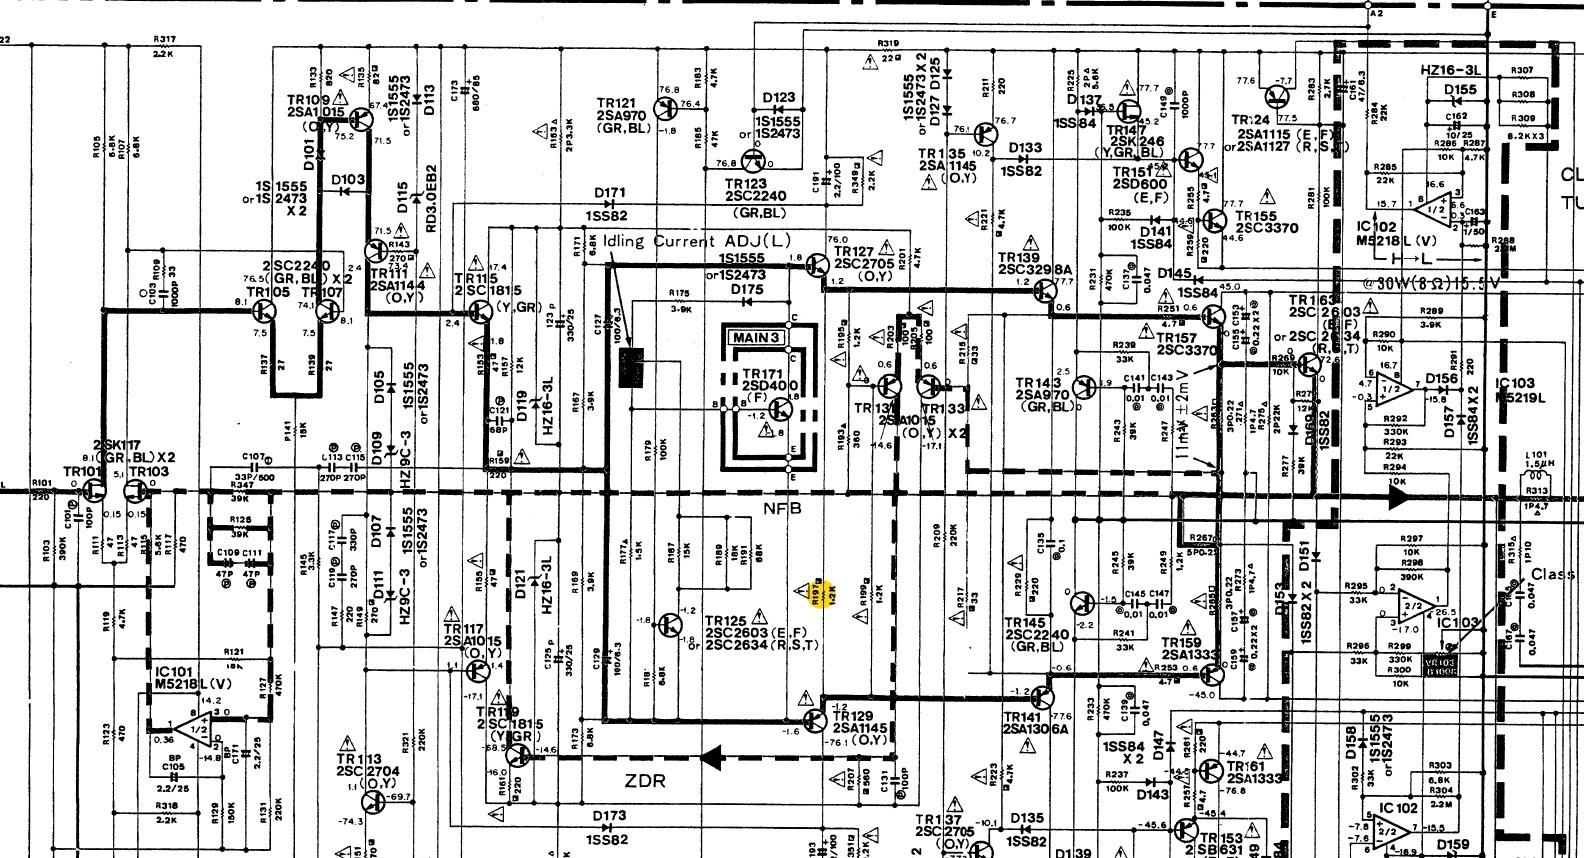 Yamaha A 1000 Schematic Left Power Amplifier R197 R198 ... on